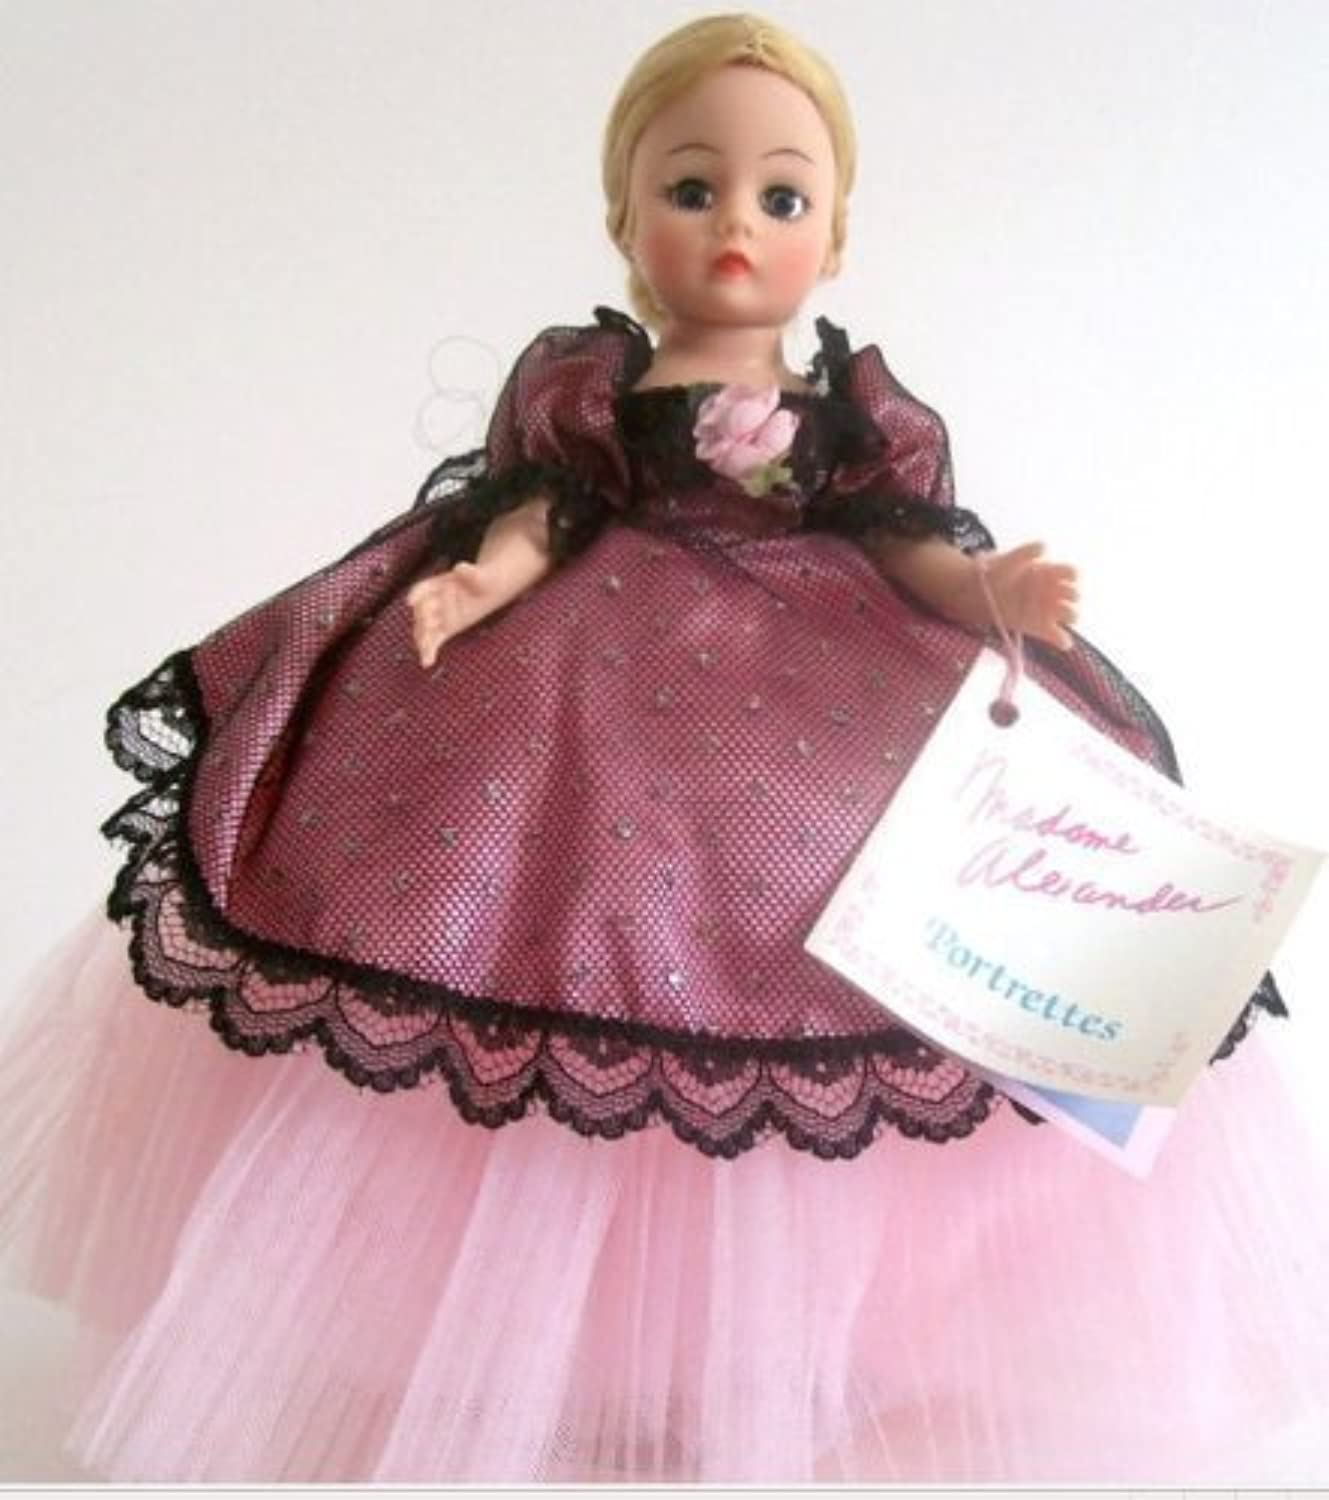 Madame Alexander Portrettes Series pinktte Doll  1115 From 1987